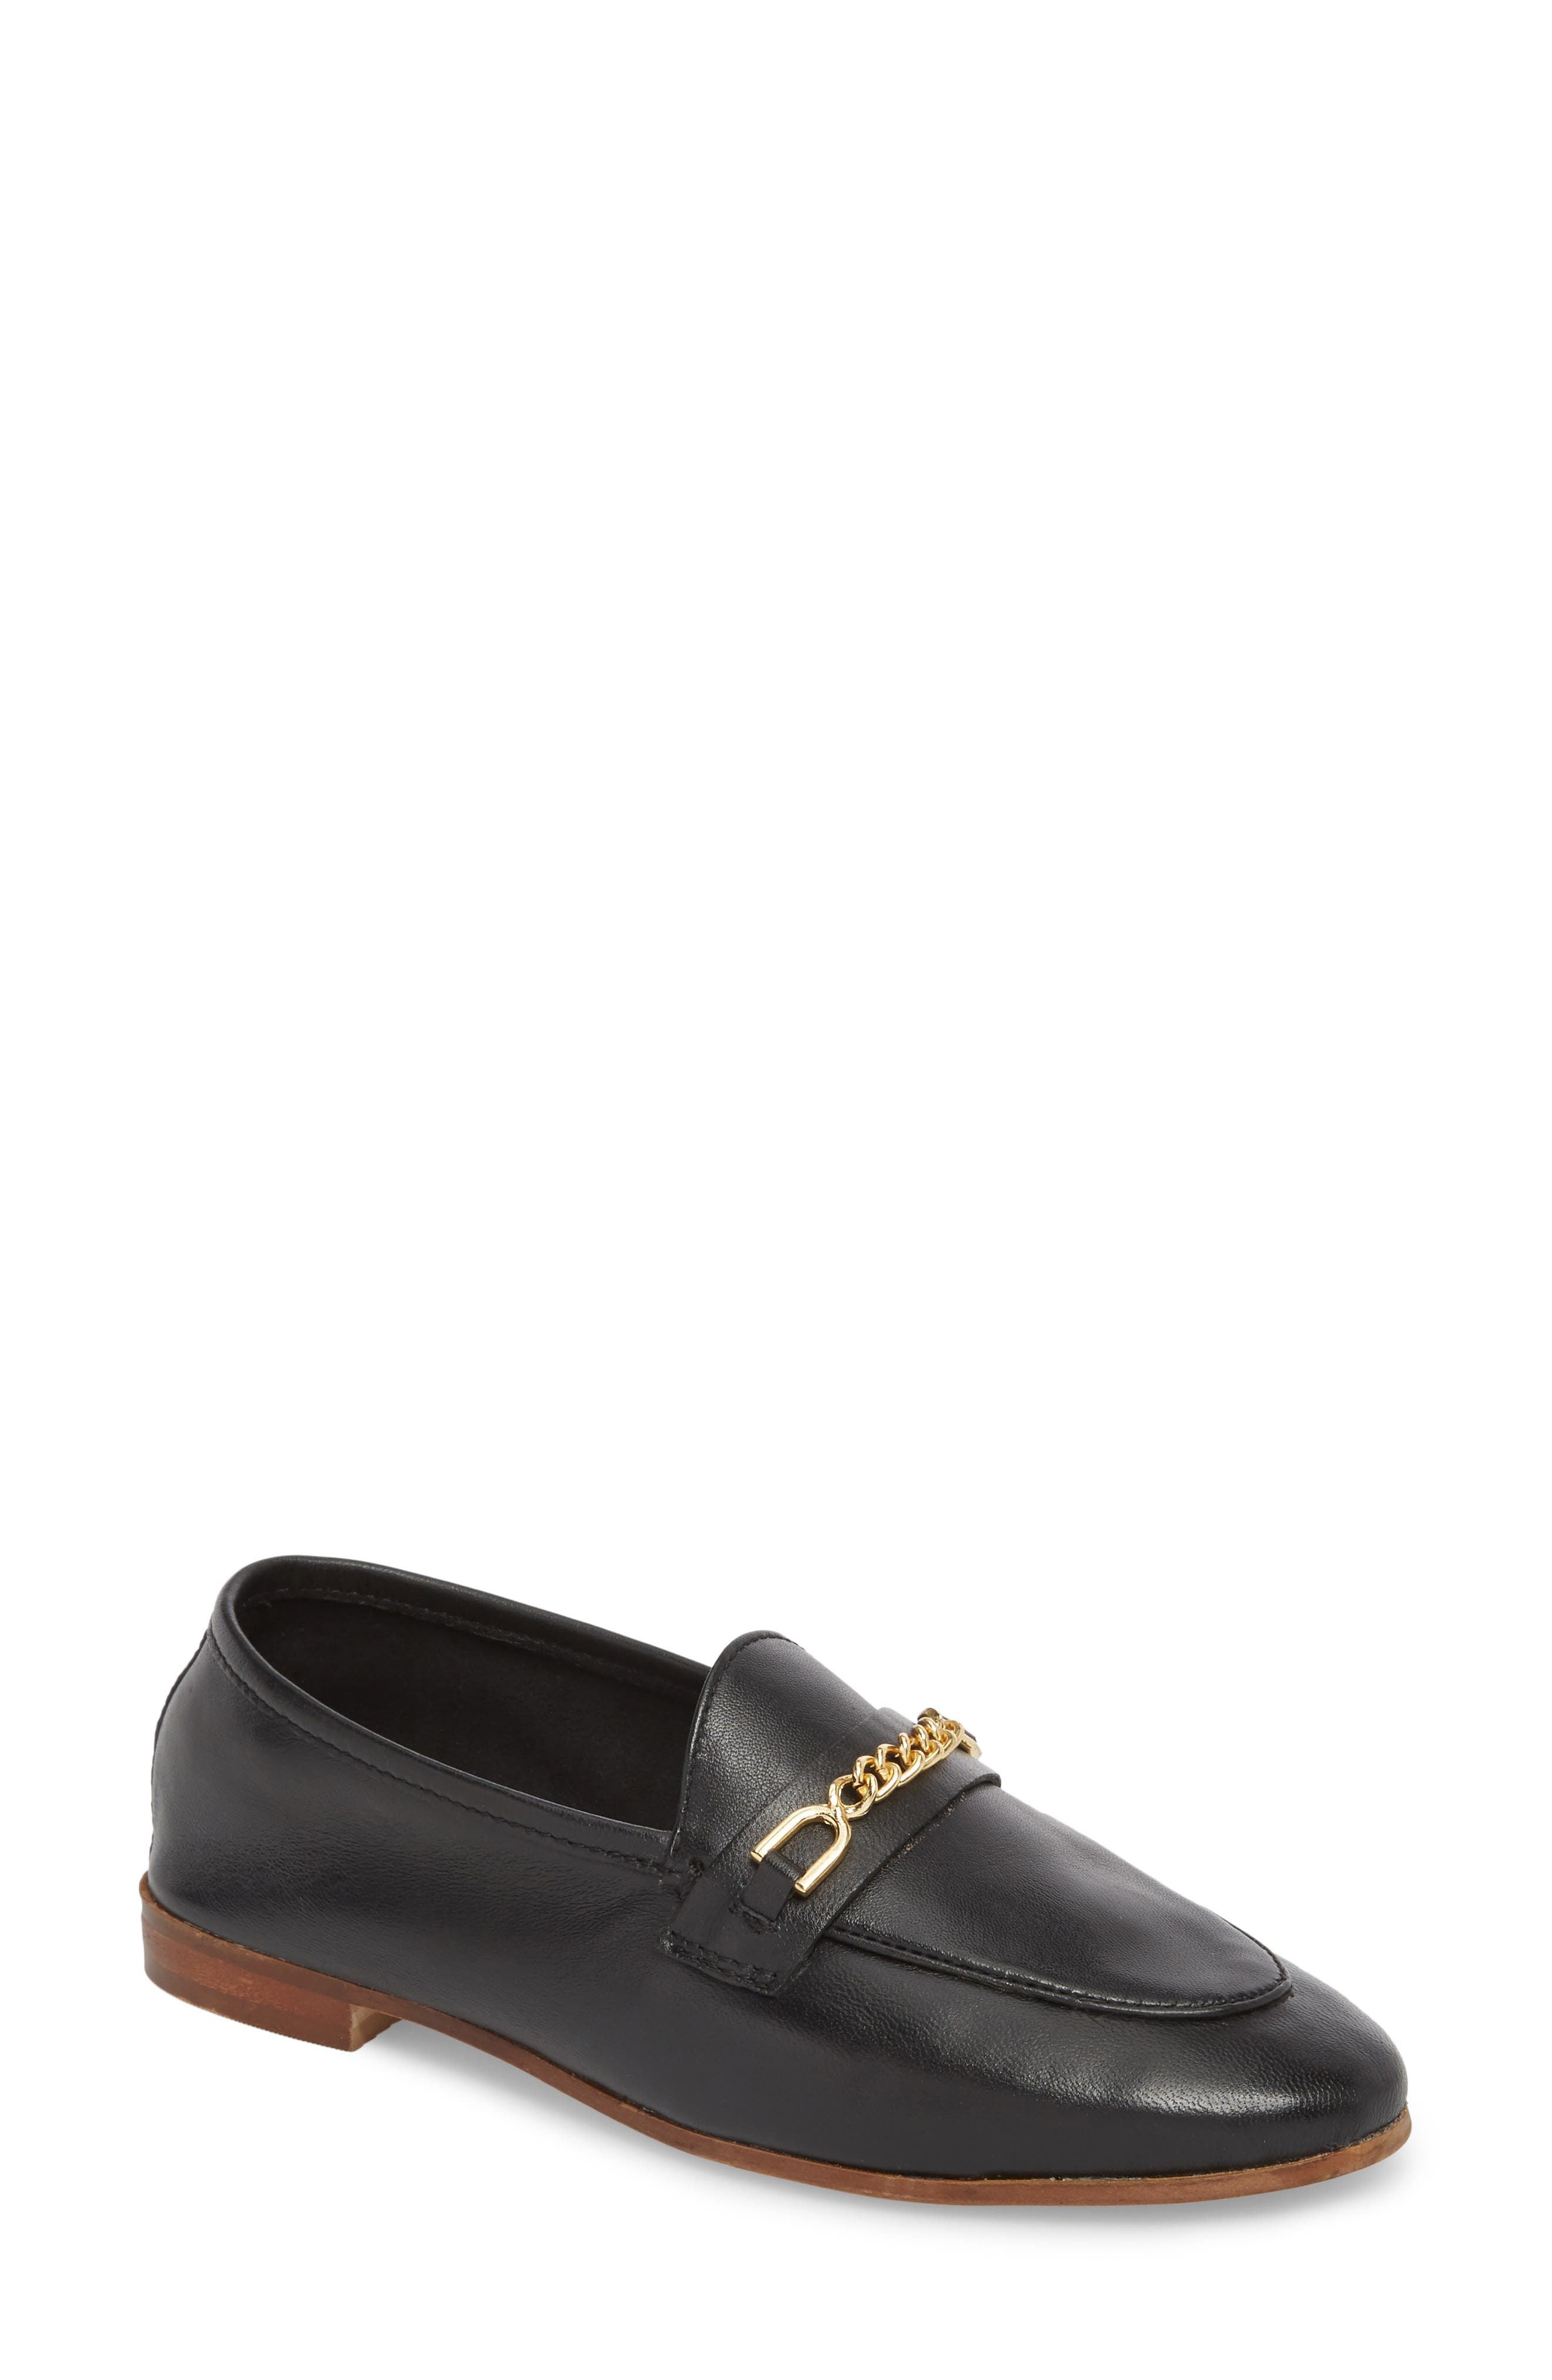 Topshop Chain Trim Apron Toe Loafer (Women)